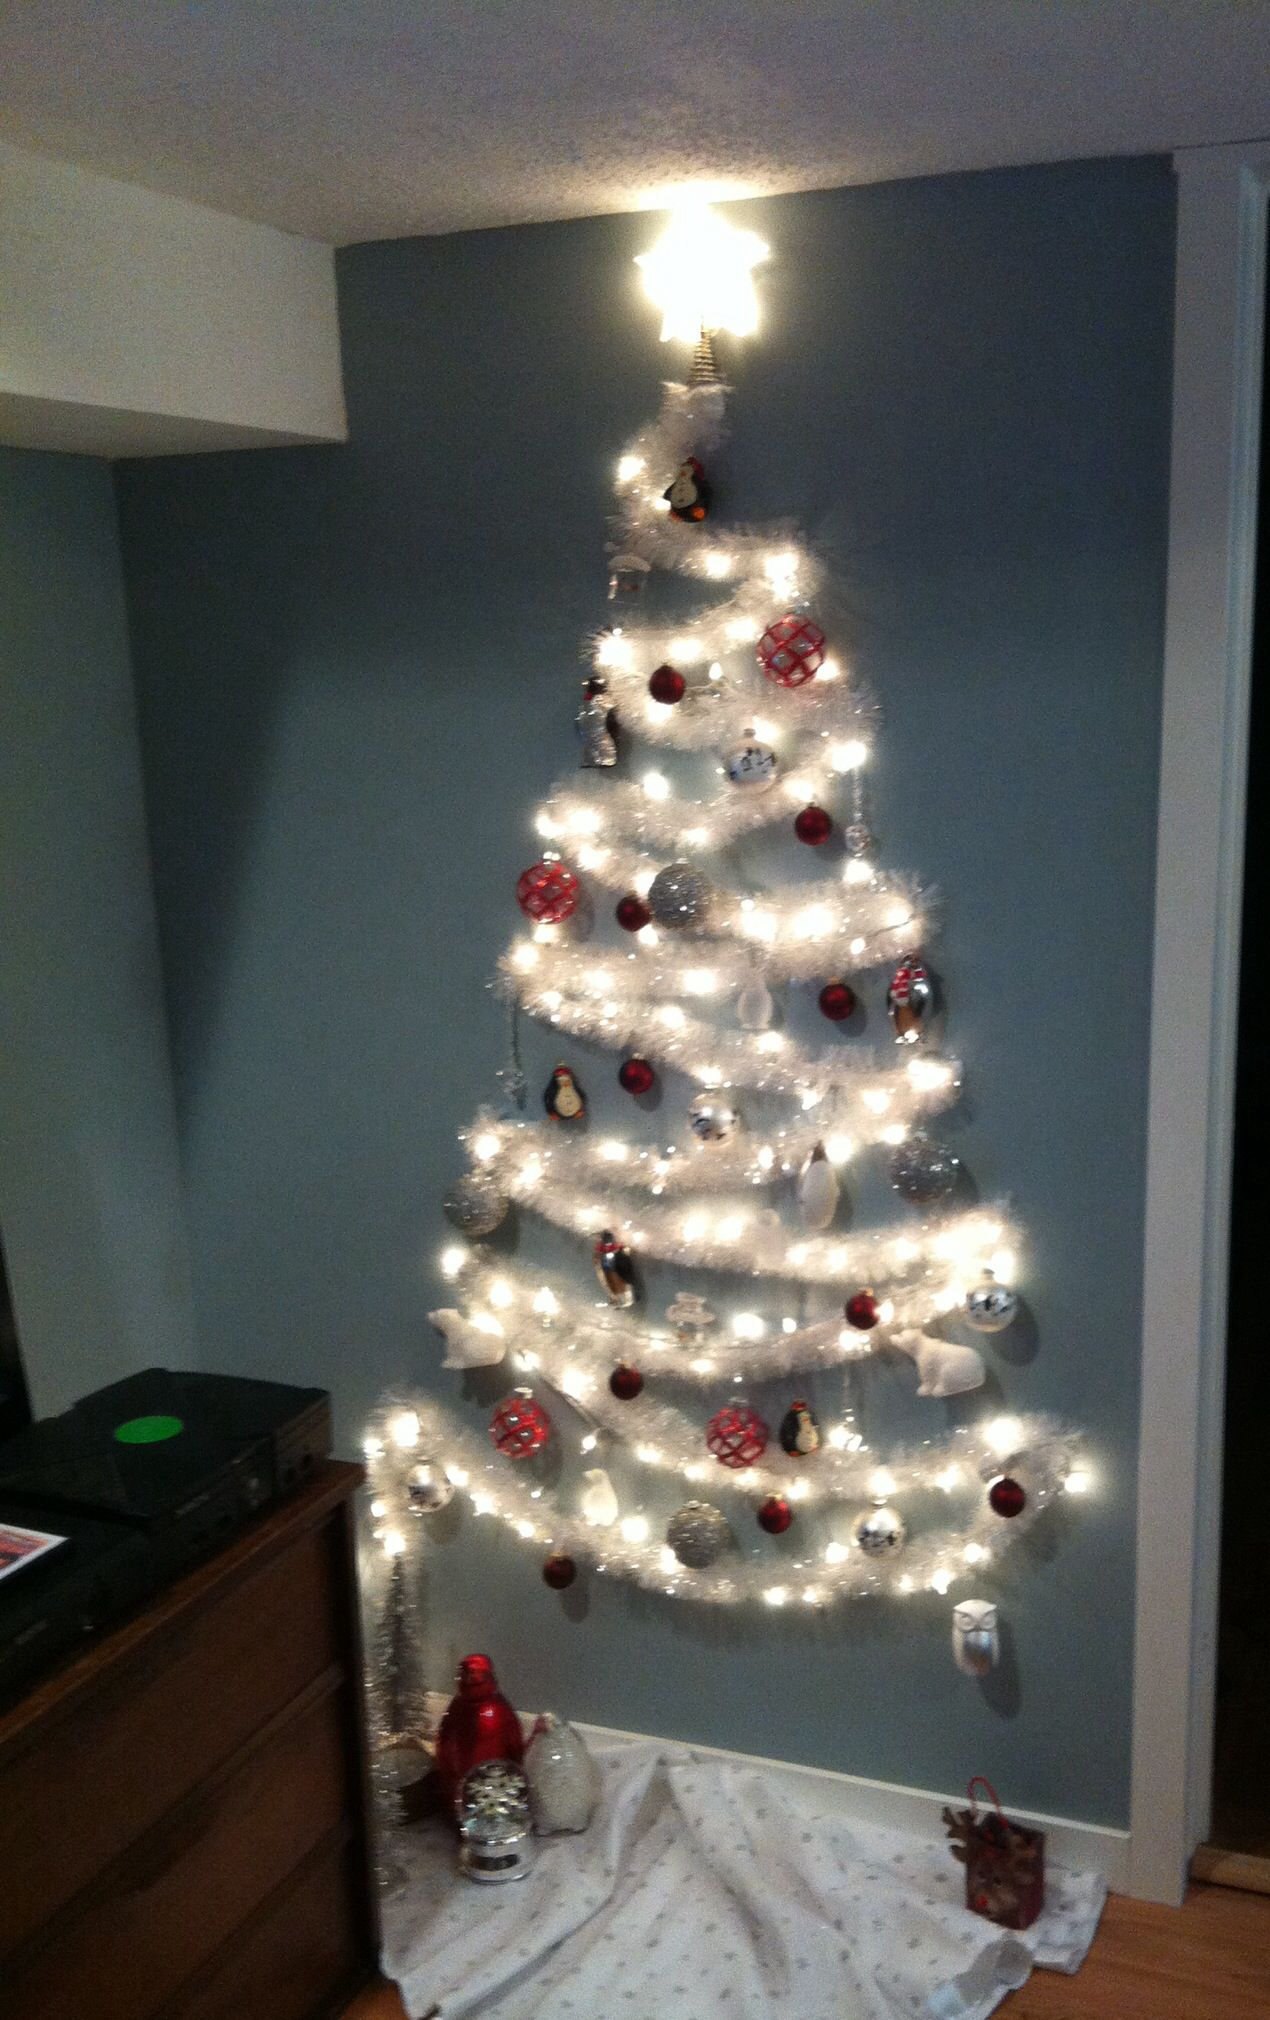 The No Tree Christmas Tree Wall Christmas Tree Diy Christmas Tree Alternative Christmas Tree